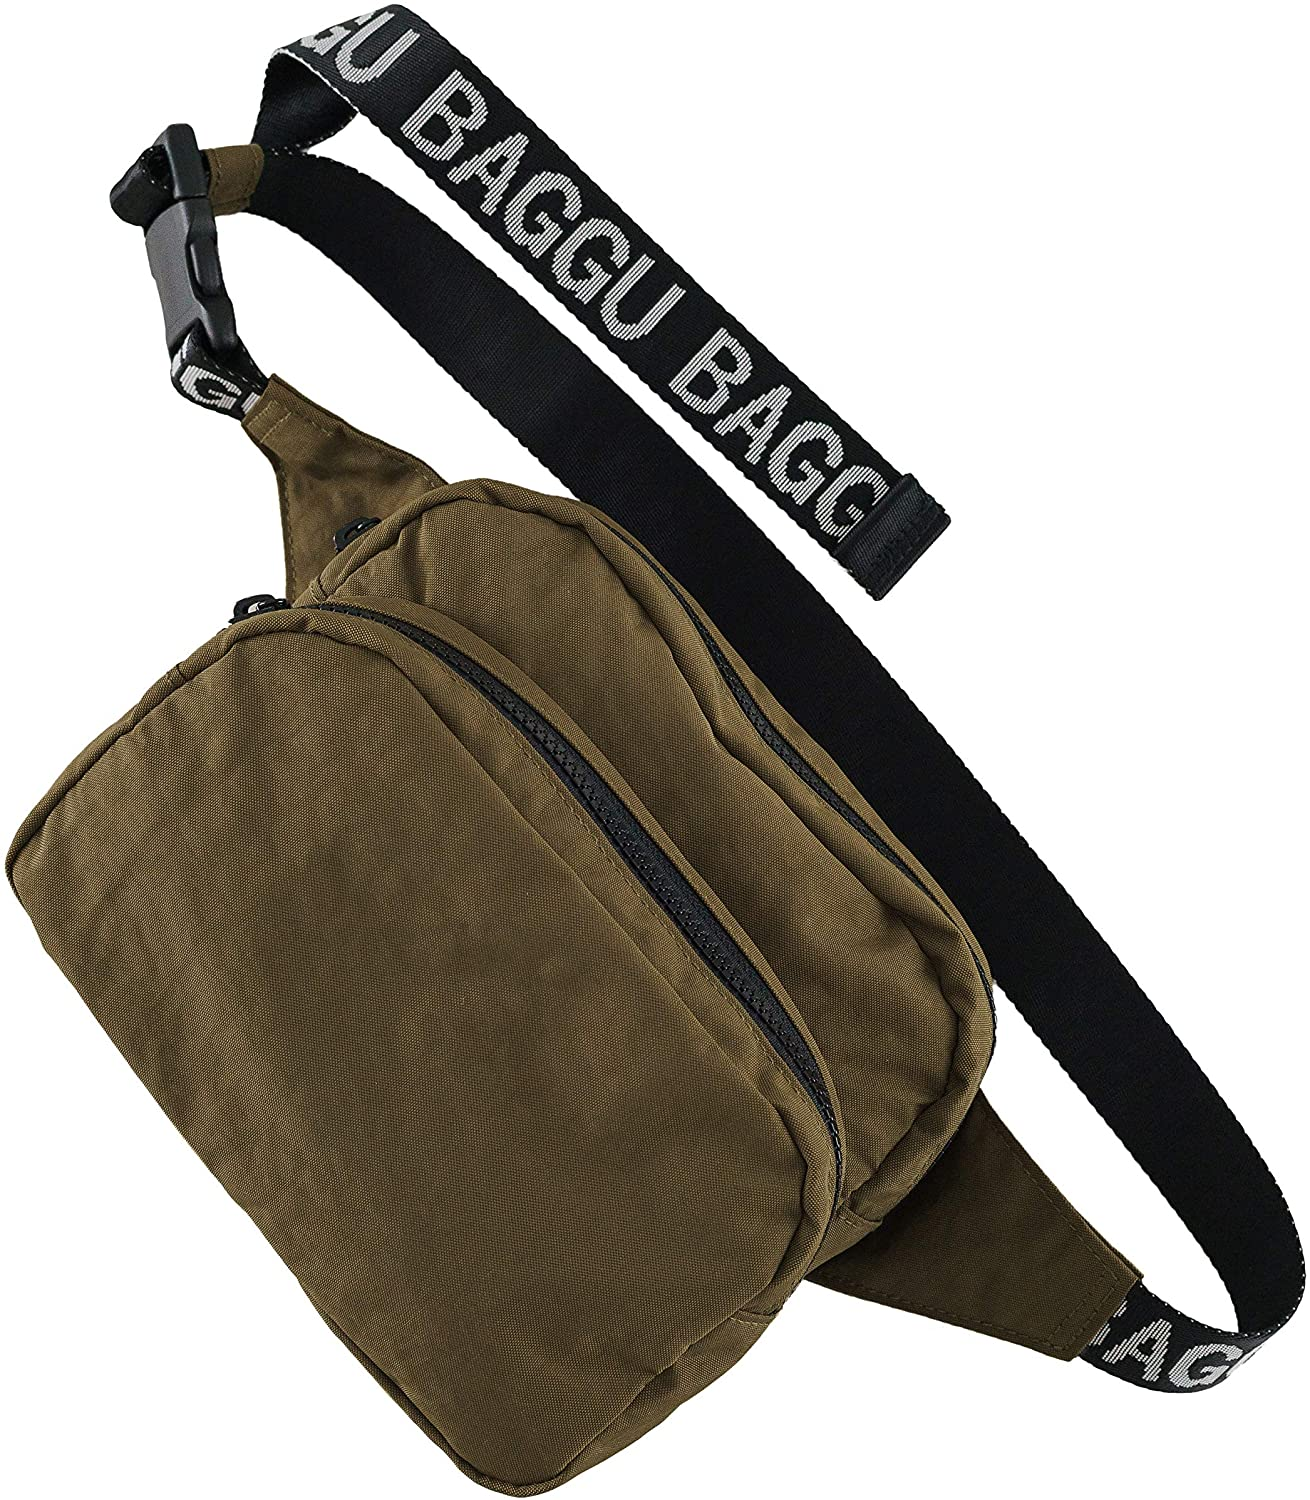 BAGGU Fanny Pack, Fashion Forward and Easy to Carry, Kelp